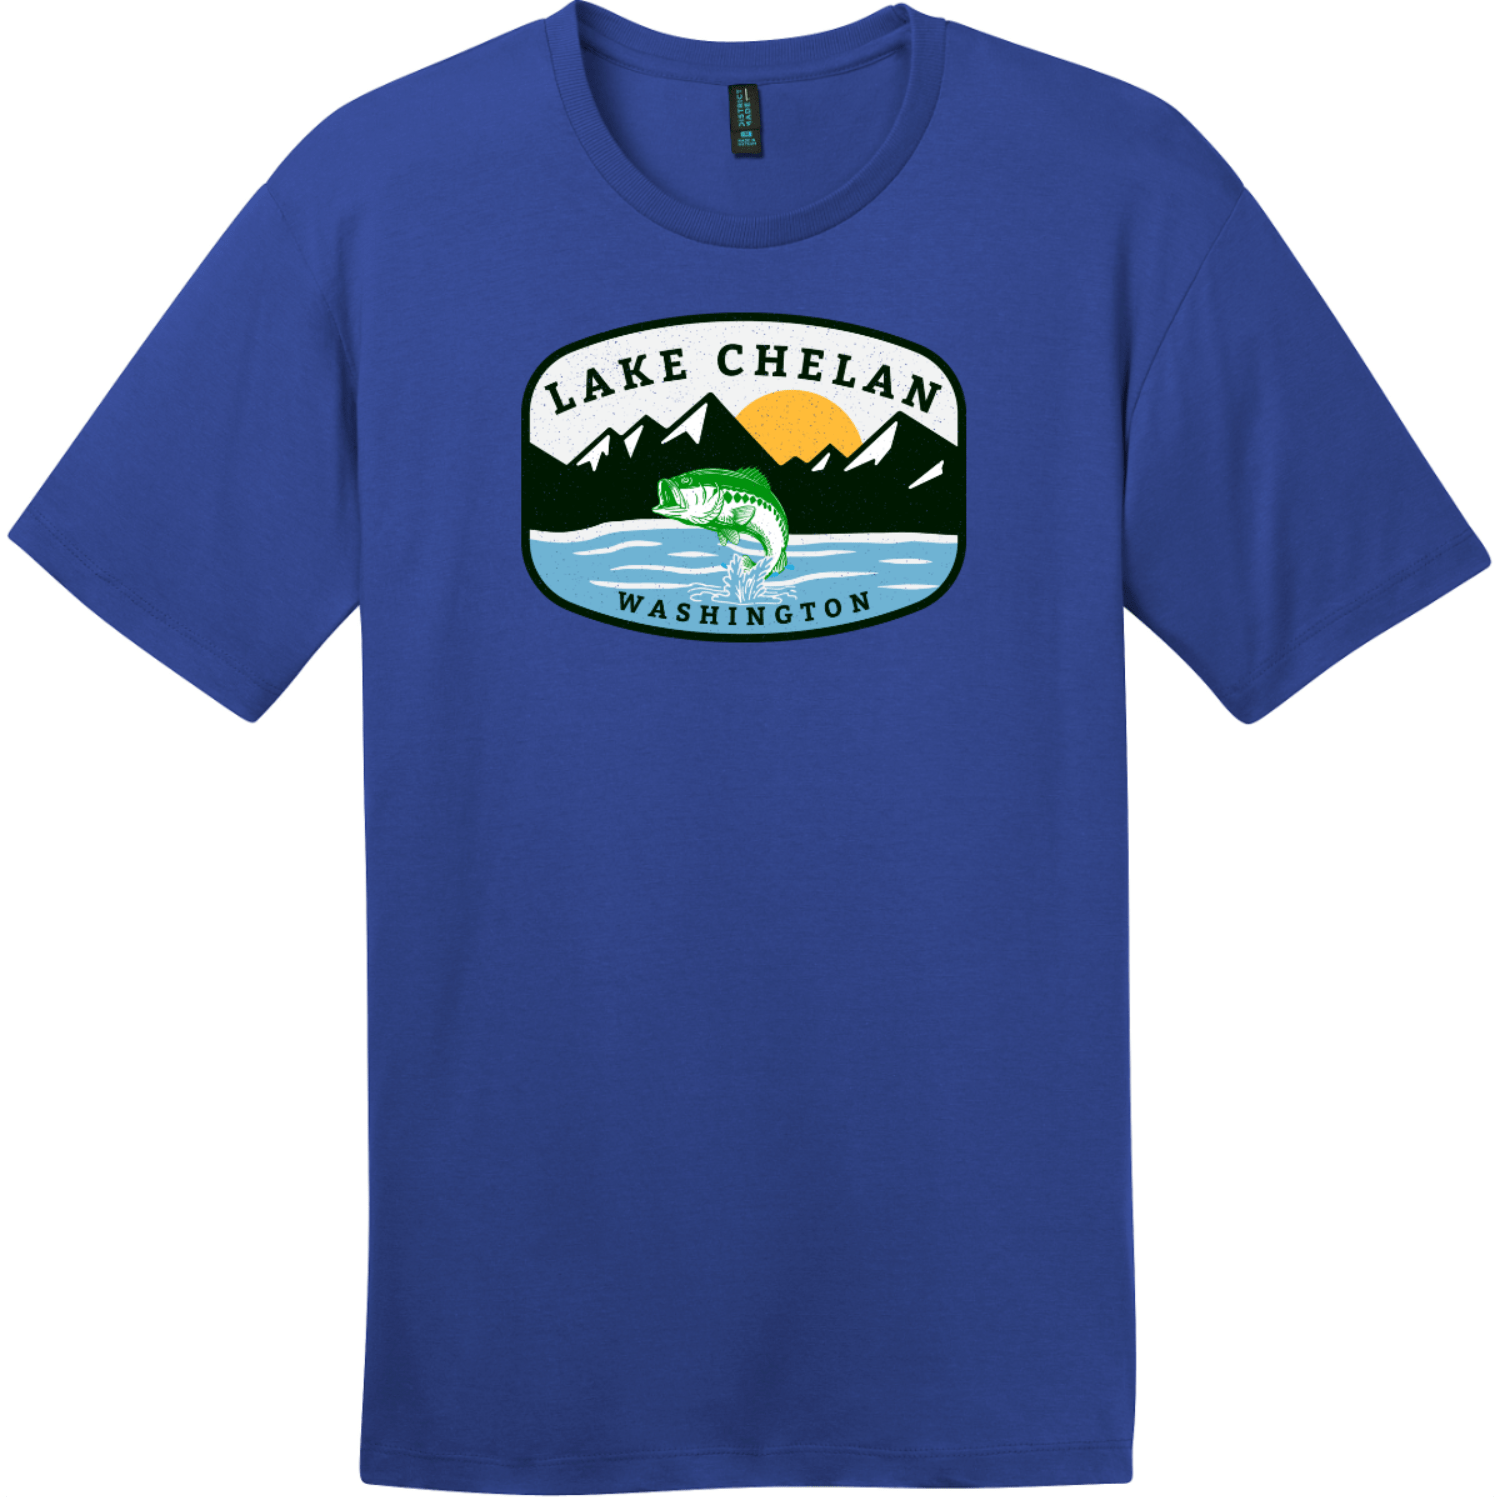 Lake Chelan Washington Fishing T-Shirt Deep Royal District Perfect Weight Tee DT104